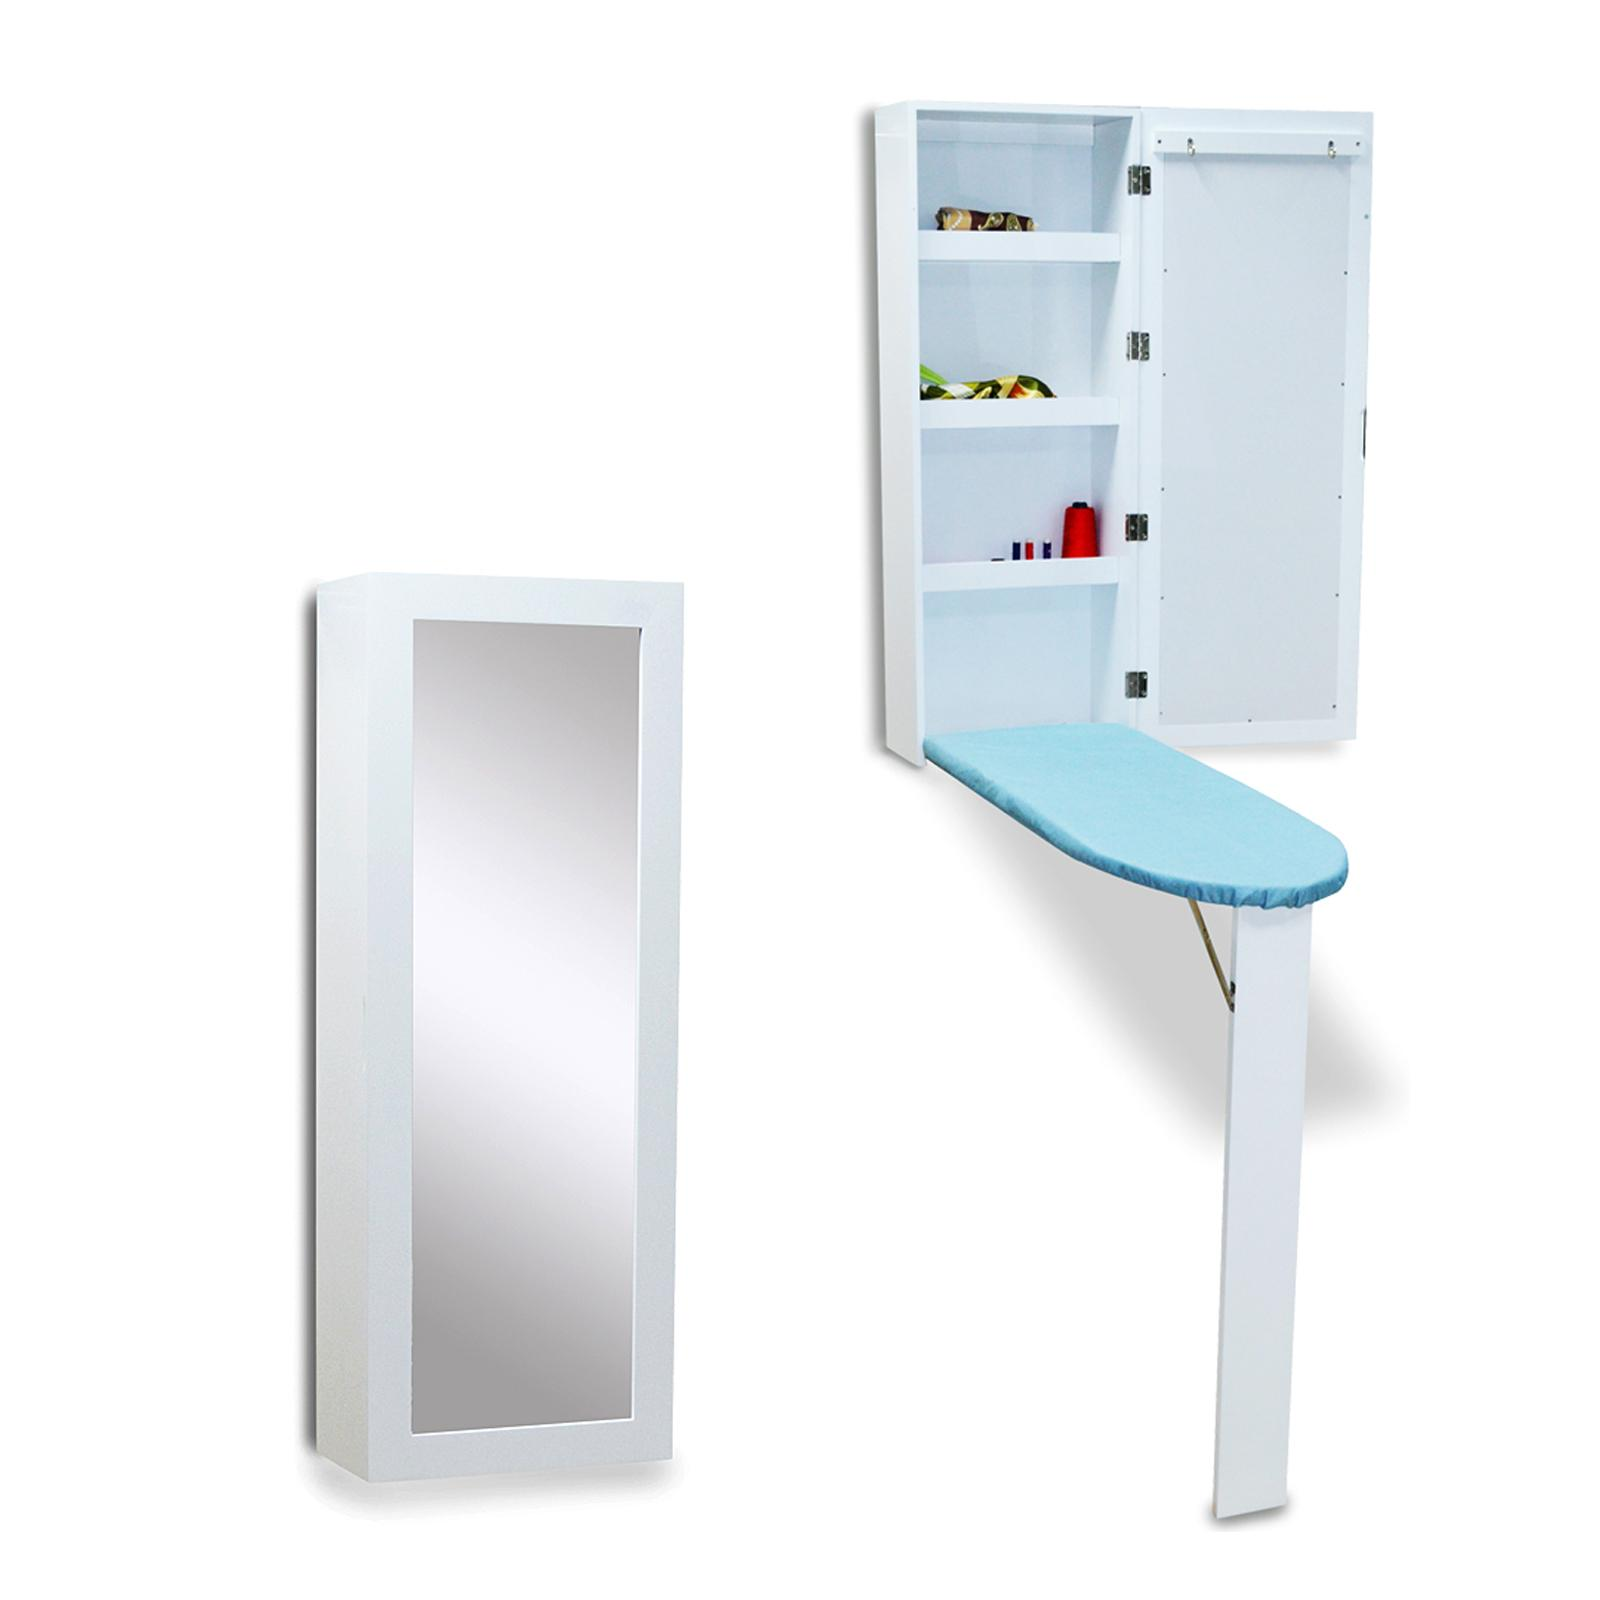 2018 Wood Ironing Board Iron Cabinet Hang In The Wall Folding With Dressing  Mirror Stock In Usa From Fashionyourlife, $124.63 | Dhgate.Com